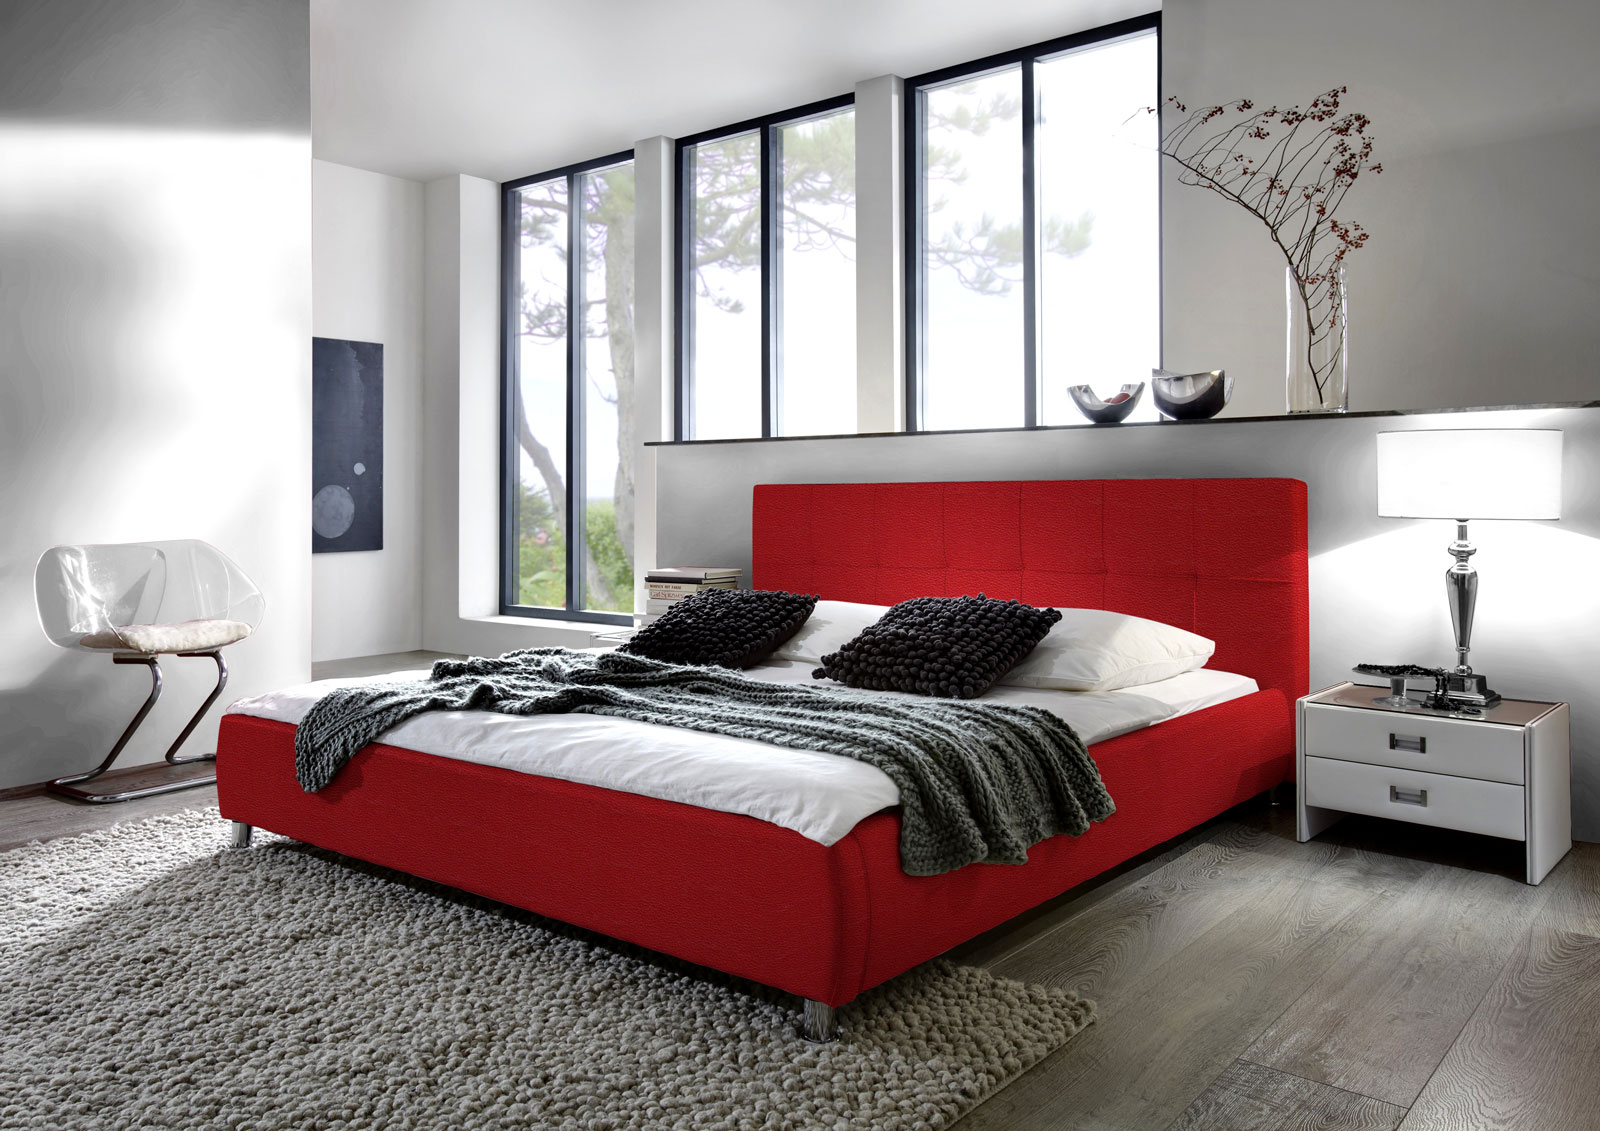 sam polsterbett 180x200 cm rot bettgestell g nstig zarah. Black Bedroom Furniture Sets. Home Design Ideas